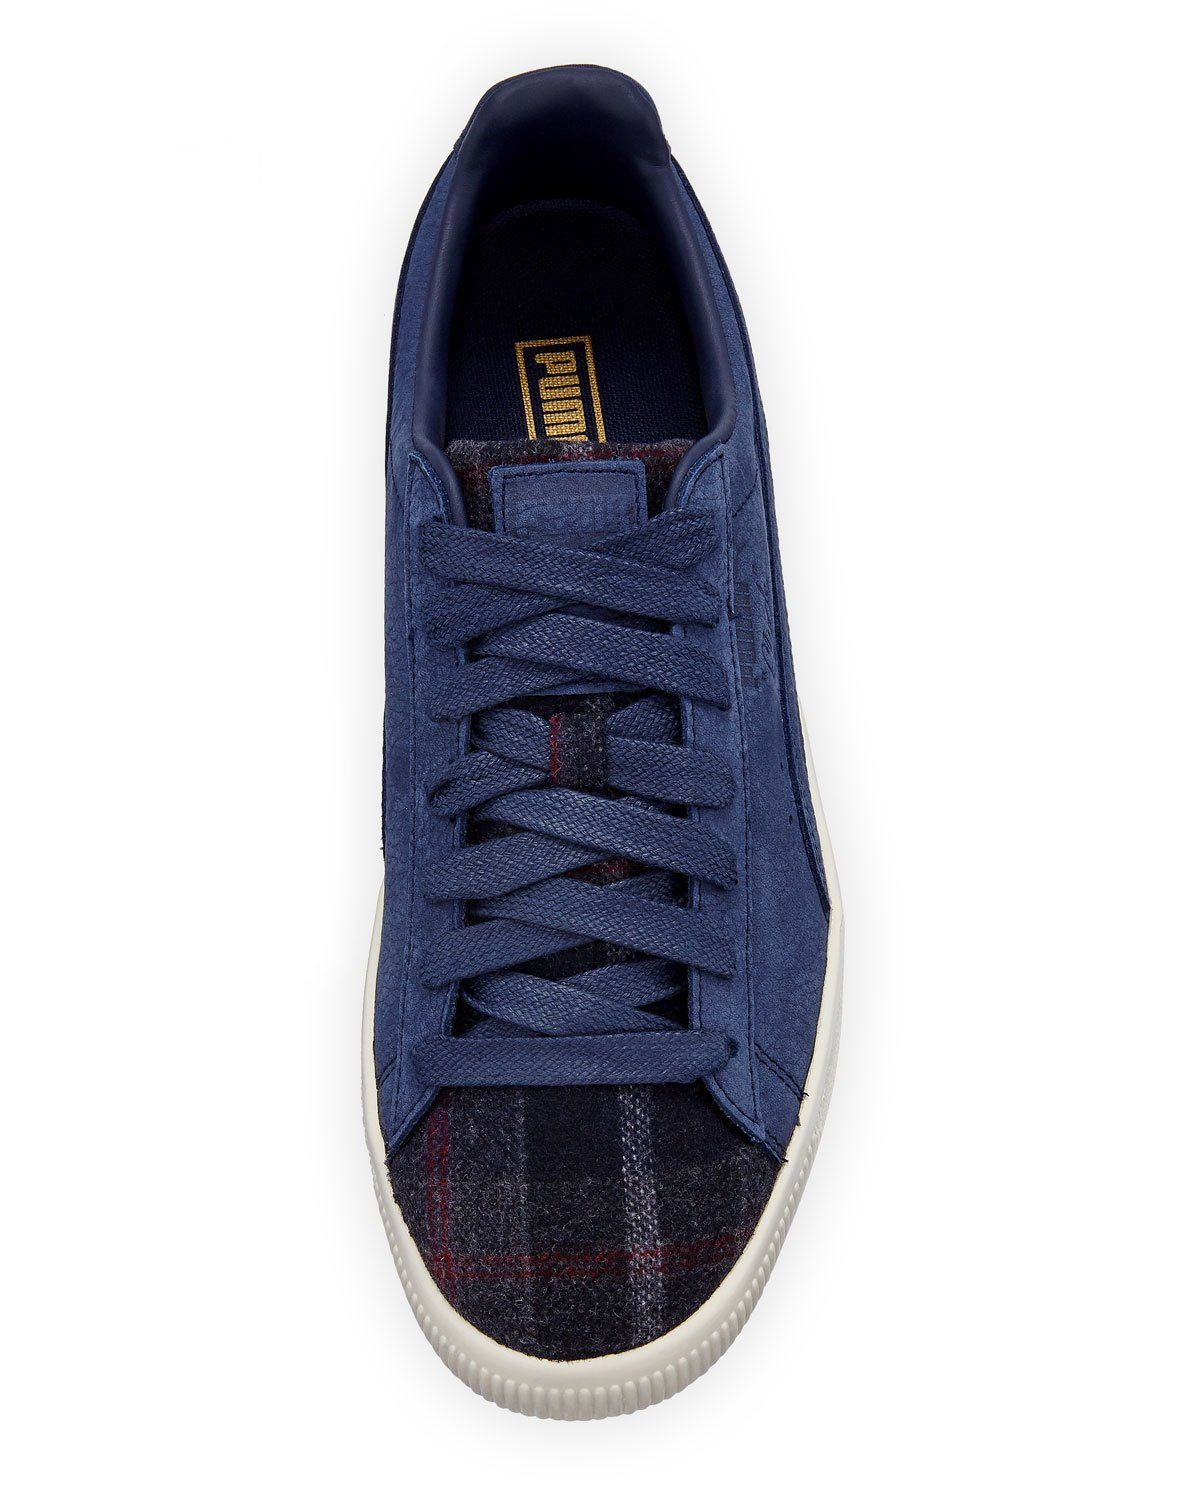 Puma Men s Clyde Plaid Suede Low-Top Sneakers  da1484ecb